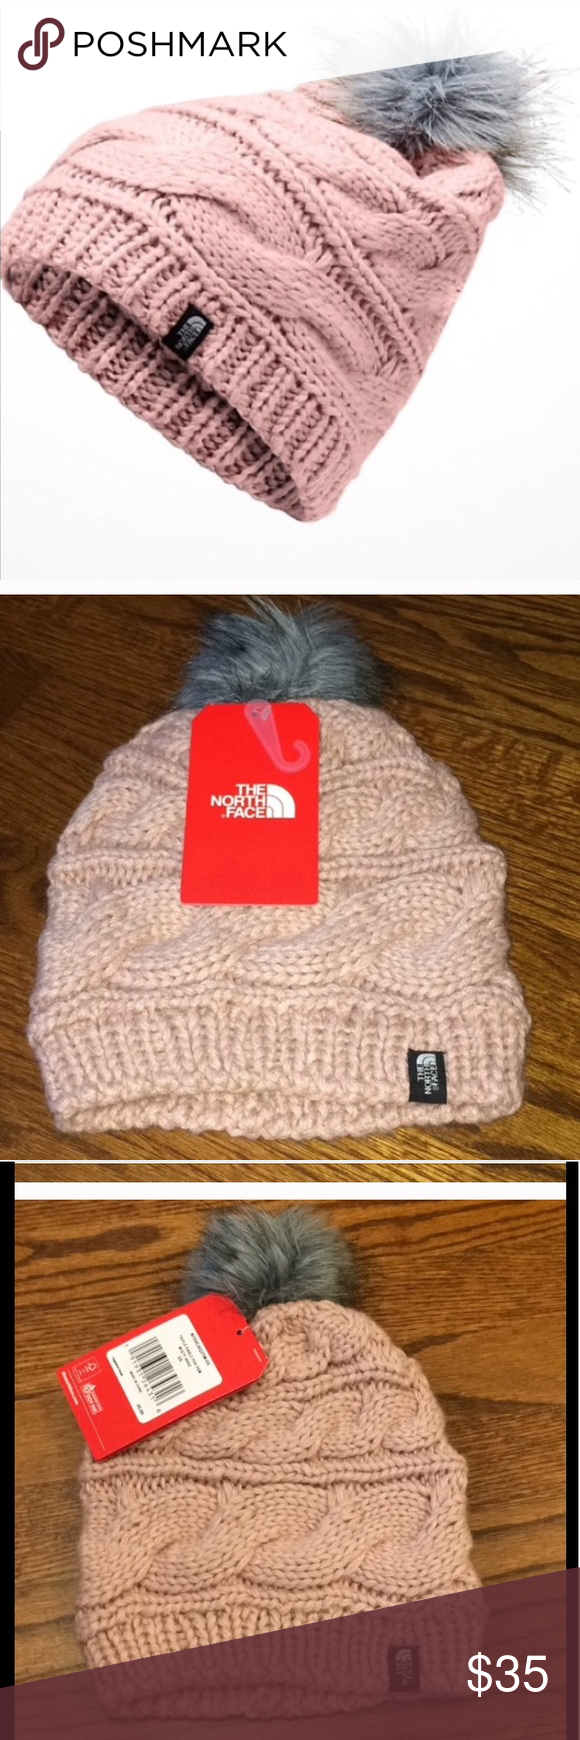 The North Face triple cable fur Pom beanie NWT o s Brand new 🆕‼ Never worn  in perfect condition all tags attached👍 This North Face beanie is in dusty  ... 909cf2584b84